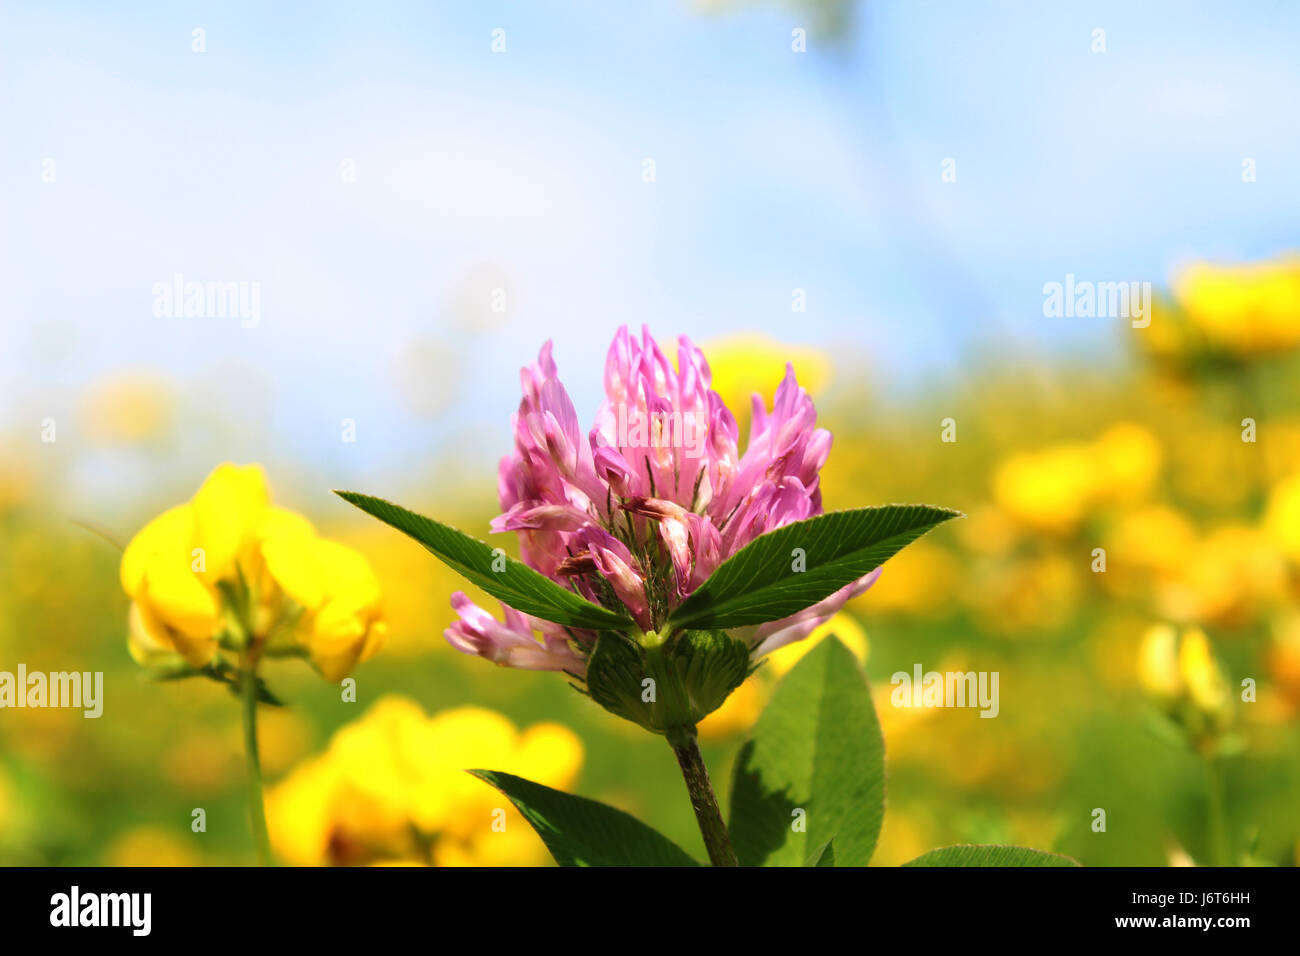 Violet Clover Flower With Many Yellow Flowers In Background Stock